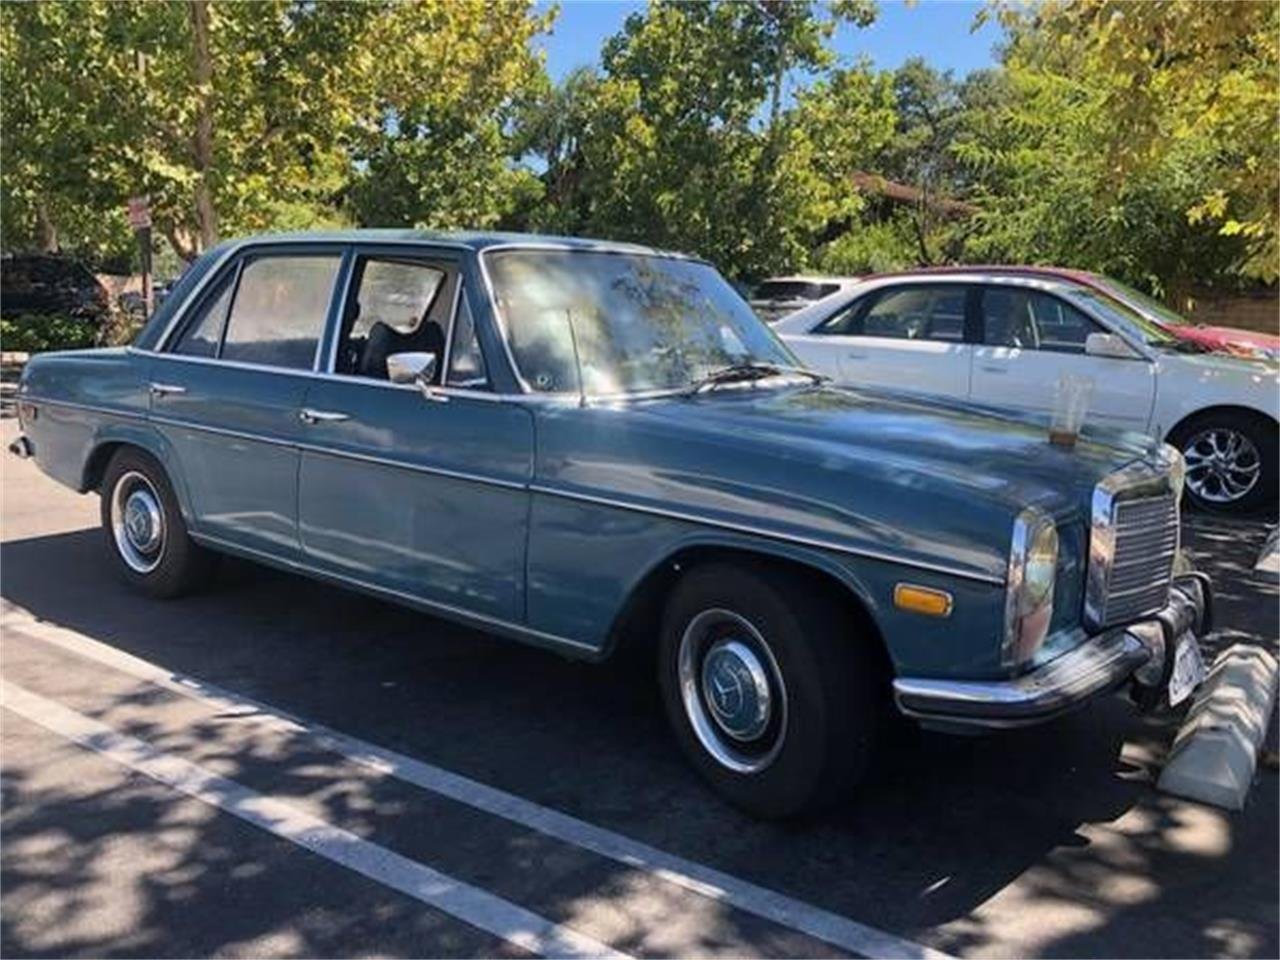 for sale 1971 mercedes-benz c-class in cadillac, michigan cars - cadillac, mi at geebo